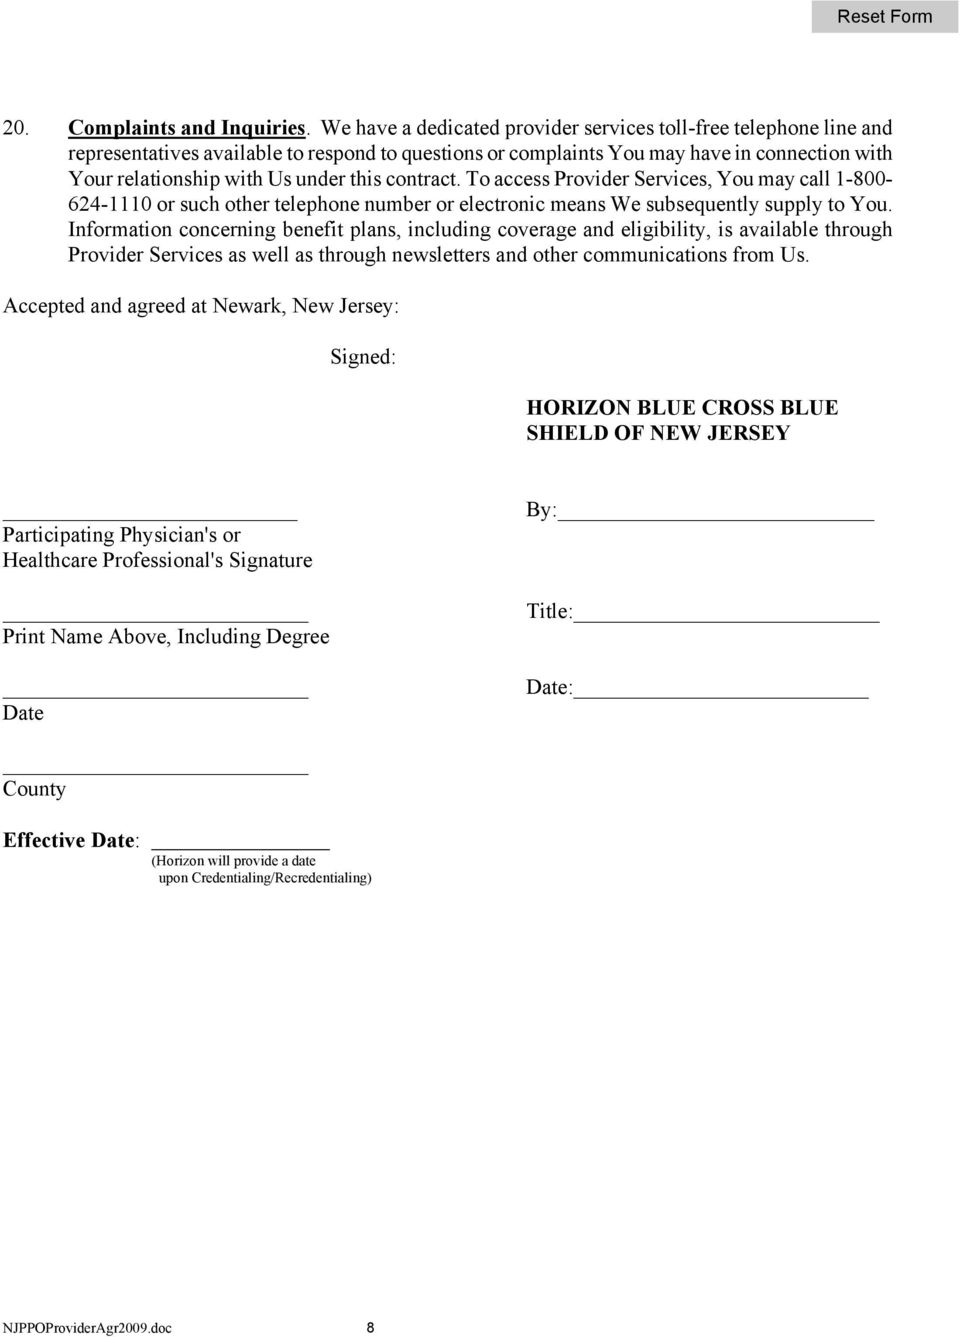 Instructions for completing the HORIZON BLUE CROSS BLUE SHIELD OF